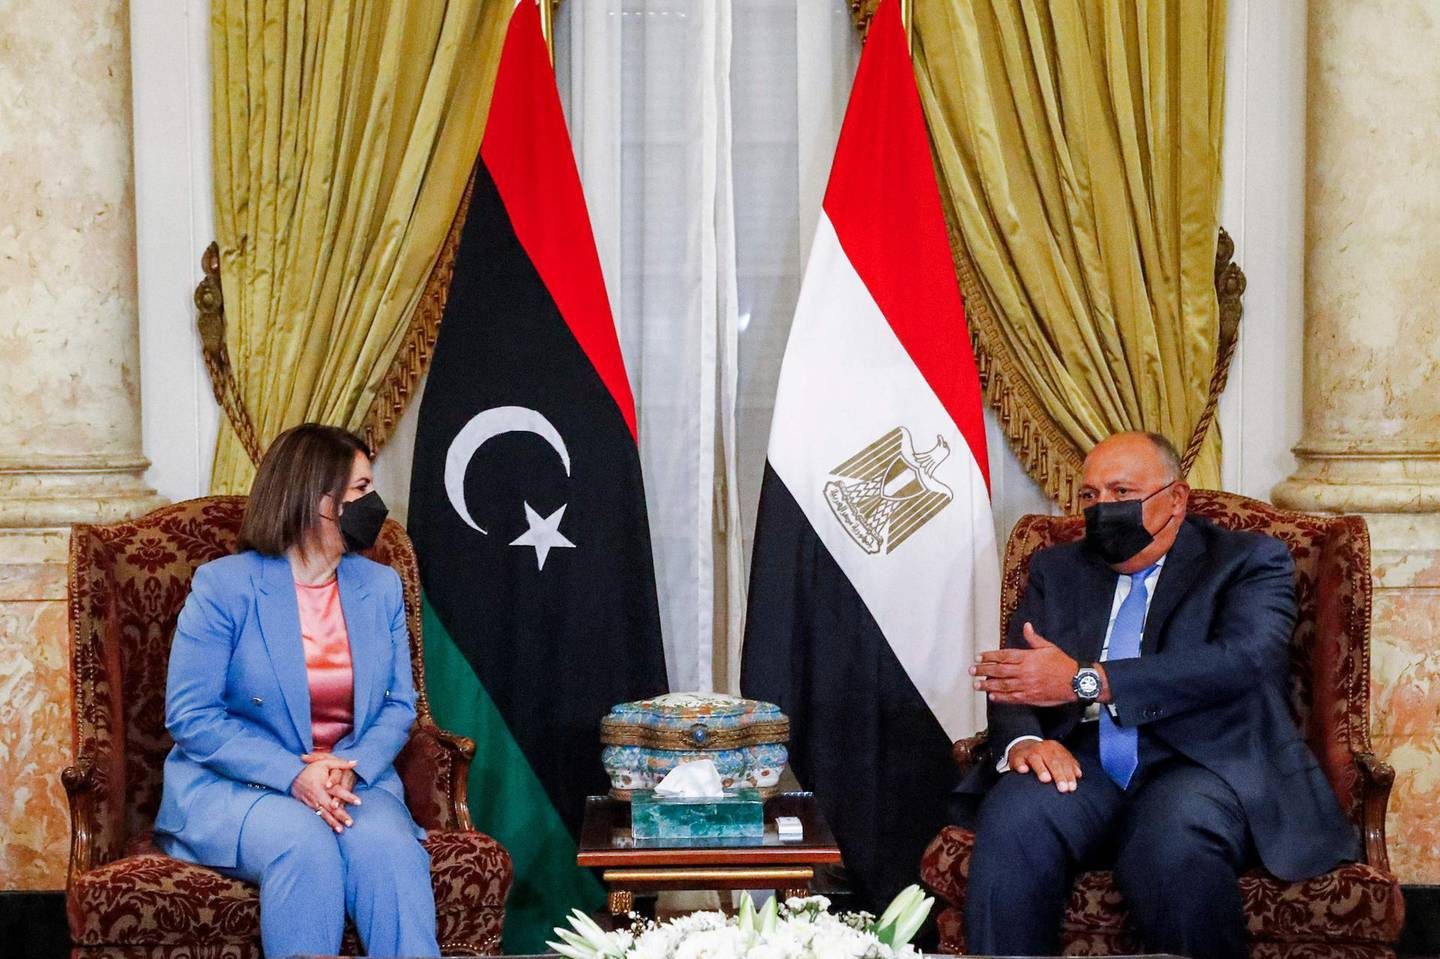 Egypt's Foreign Minister Sameh Shoukri (R) meets with his Libyan counterpart Najla al-Mangoush (L) in the capital Cairo on June 19, 2021. / AFP / Khaled DESOUKI